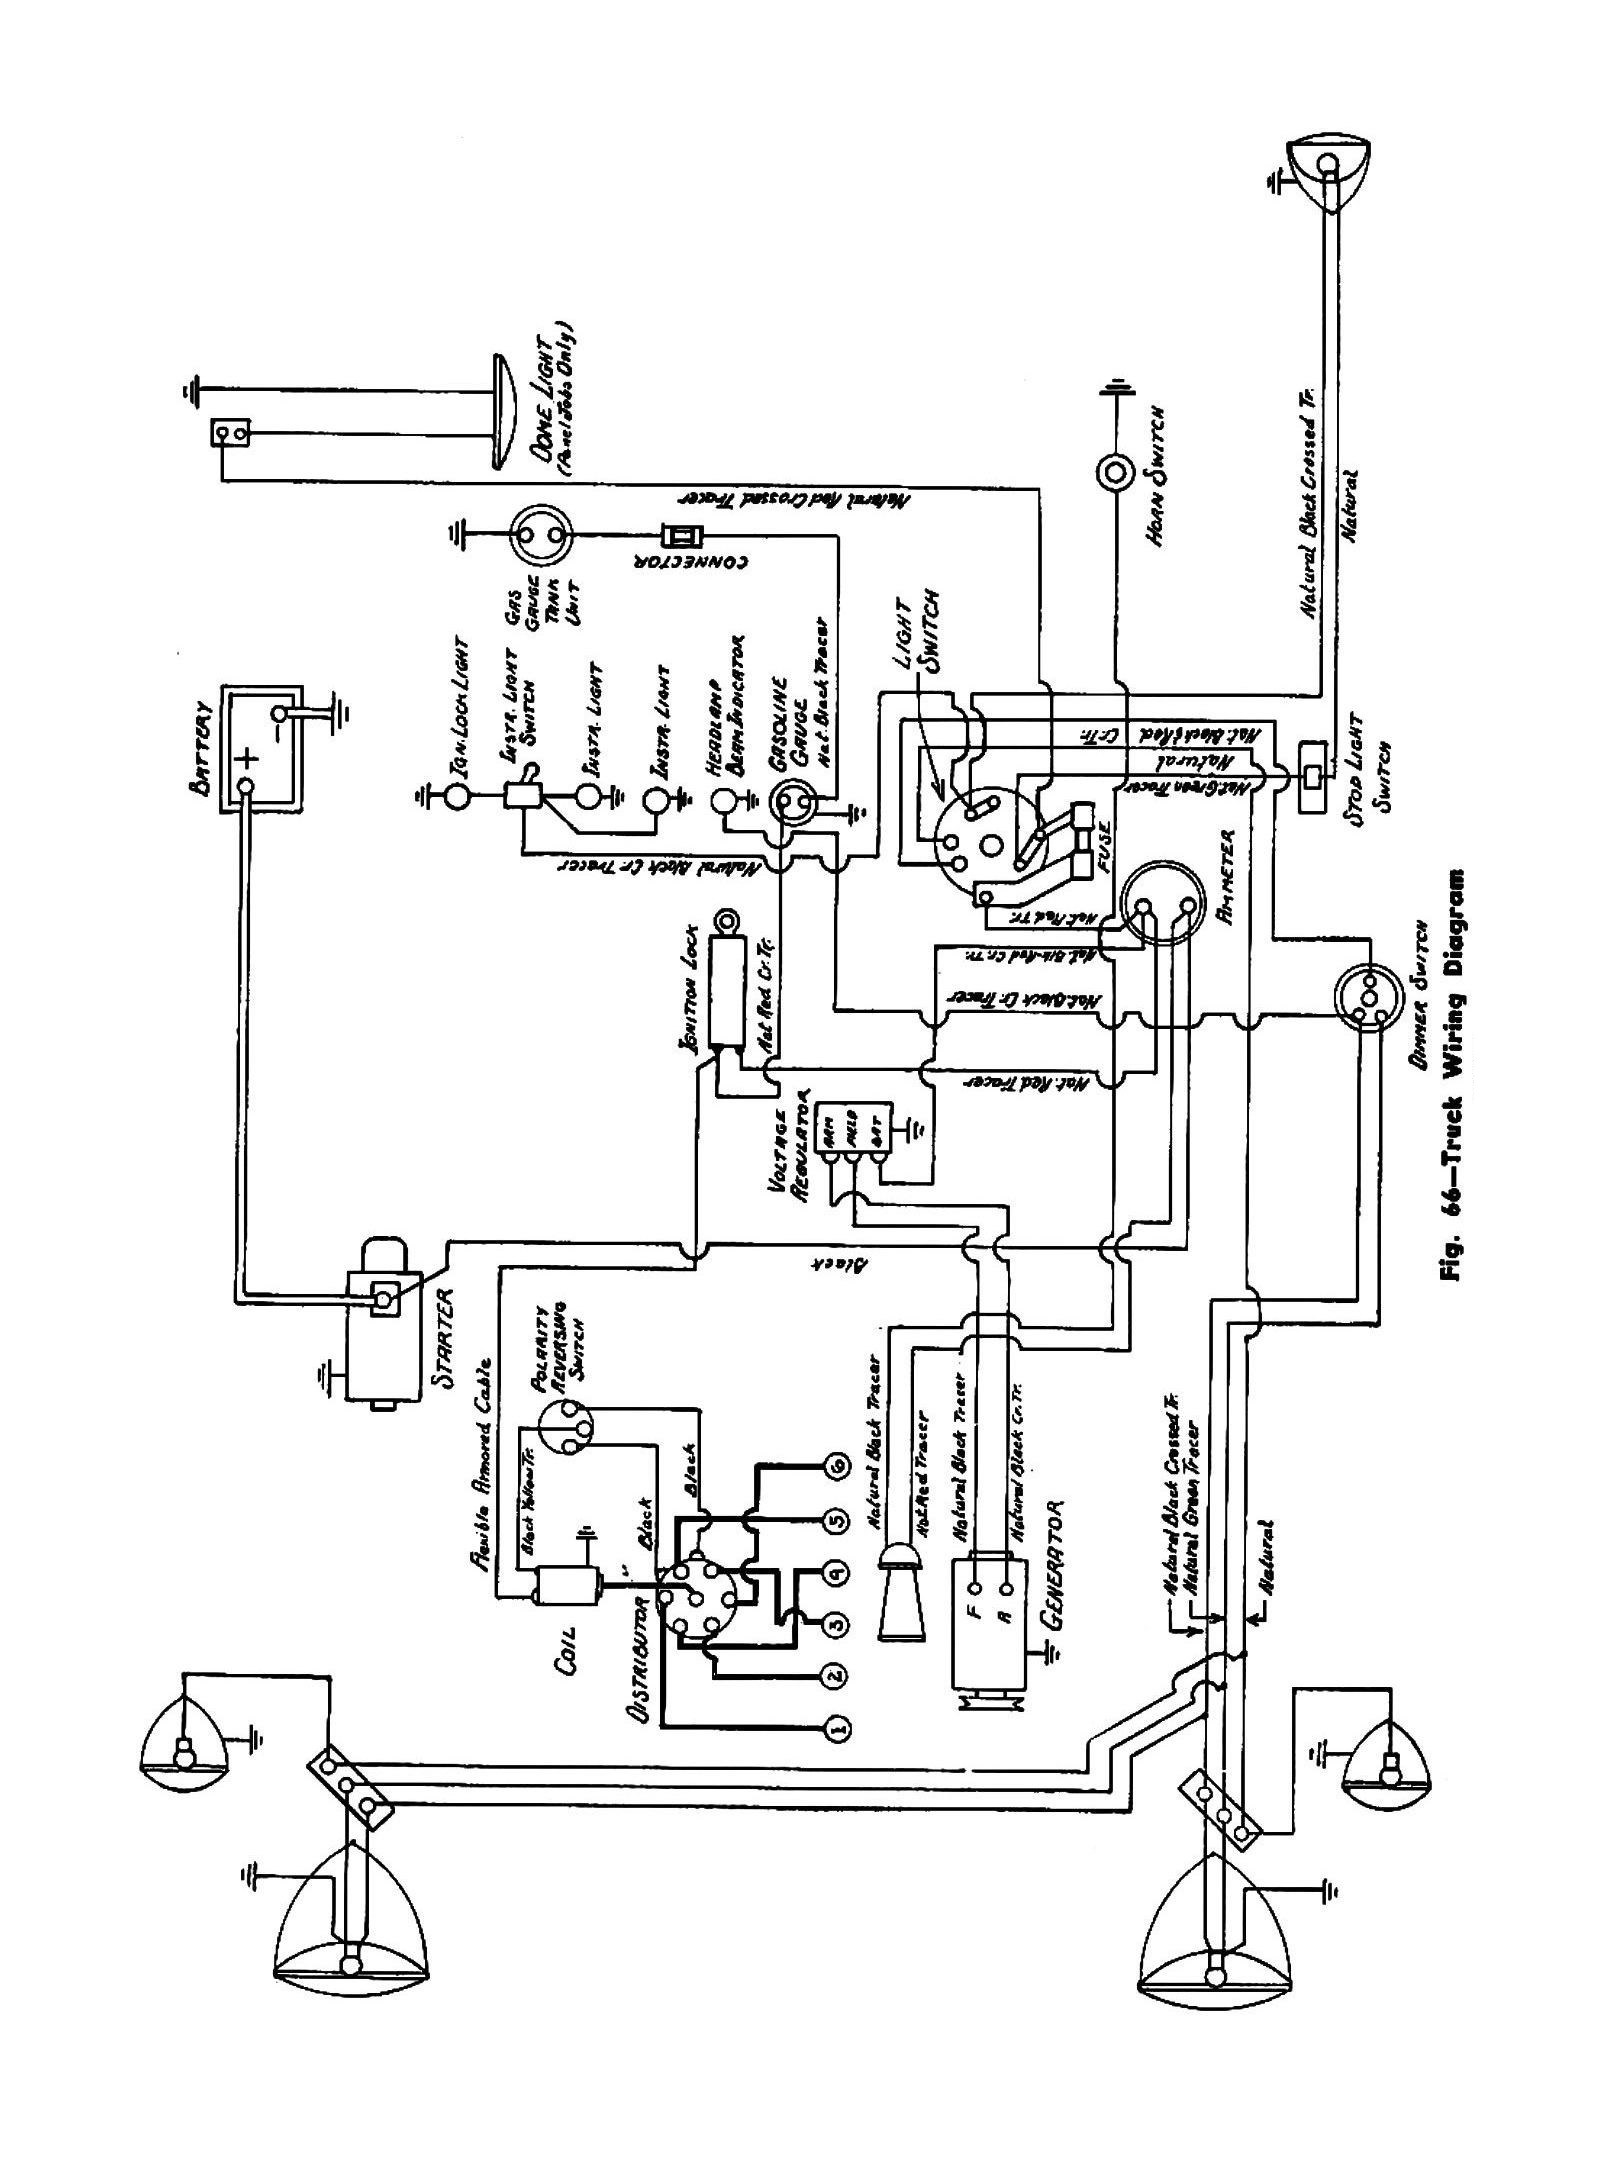 45truck chevy truck electrical schematics efcaviation com 1984 chevy truck electrical wiring diagram at edmiracle.co